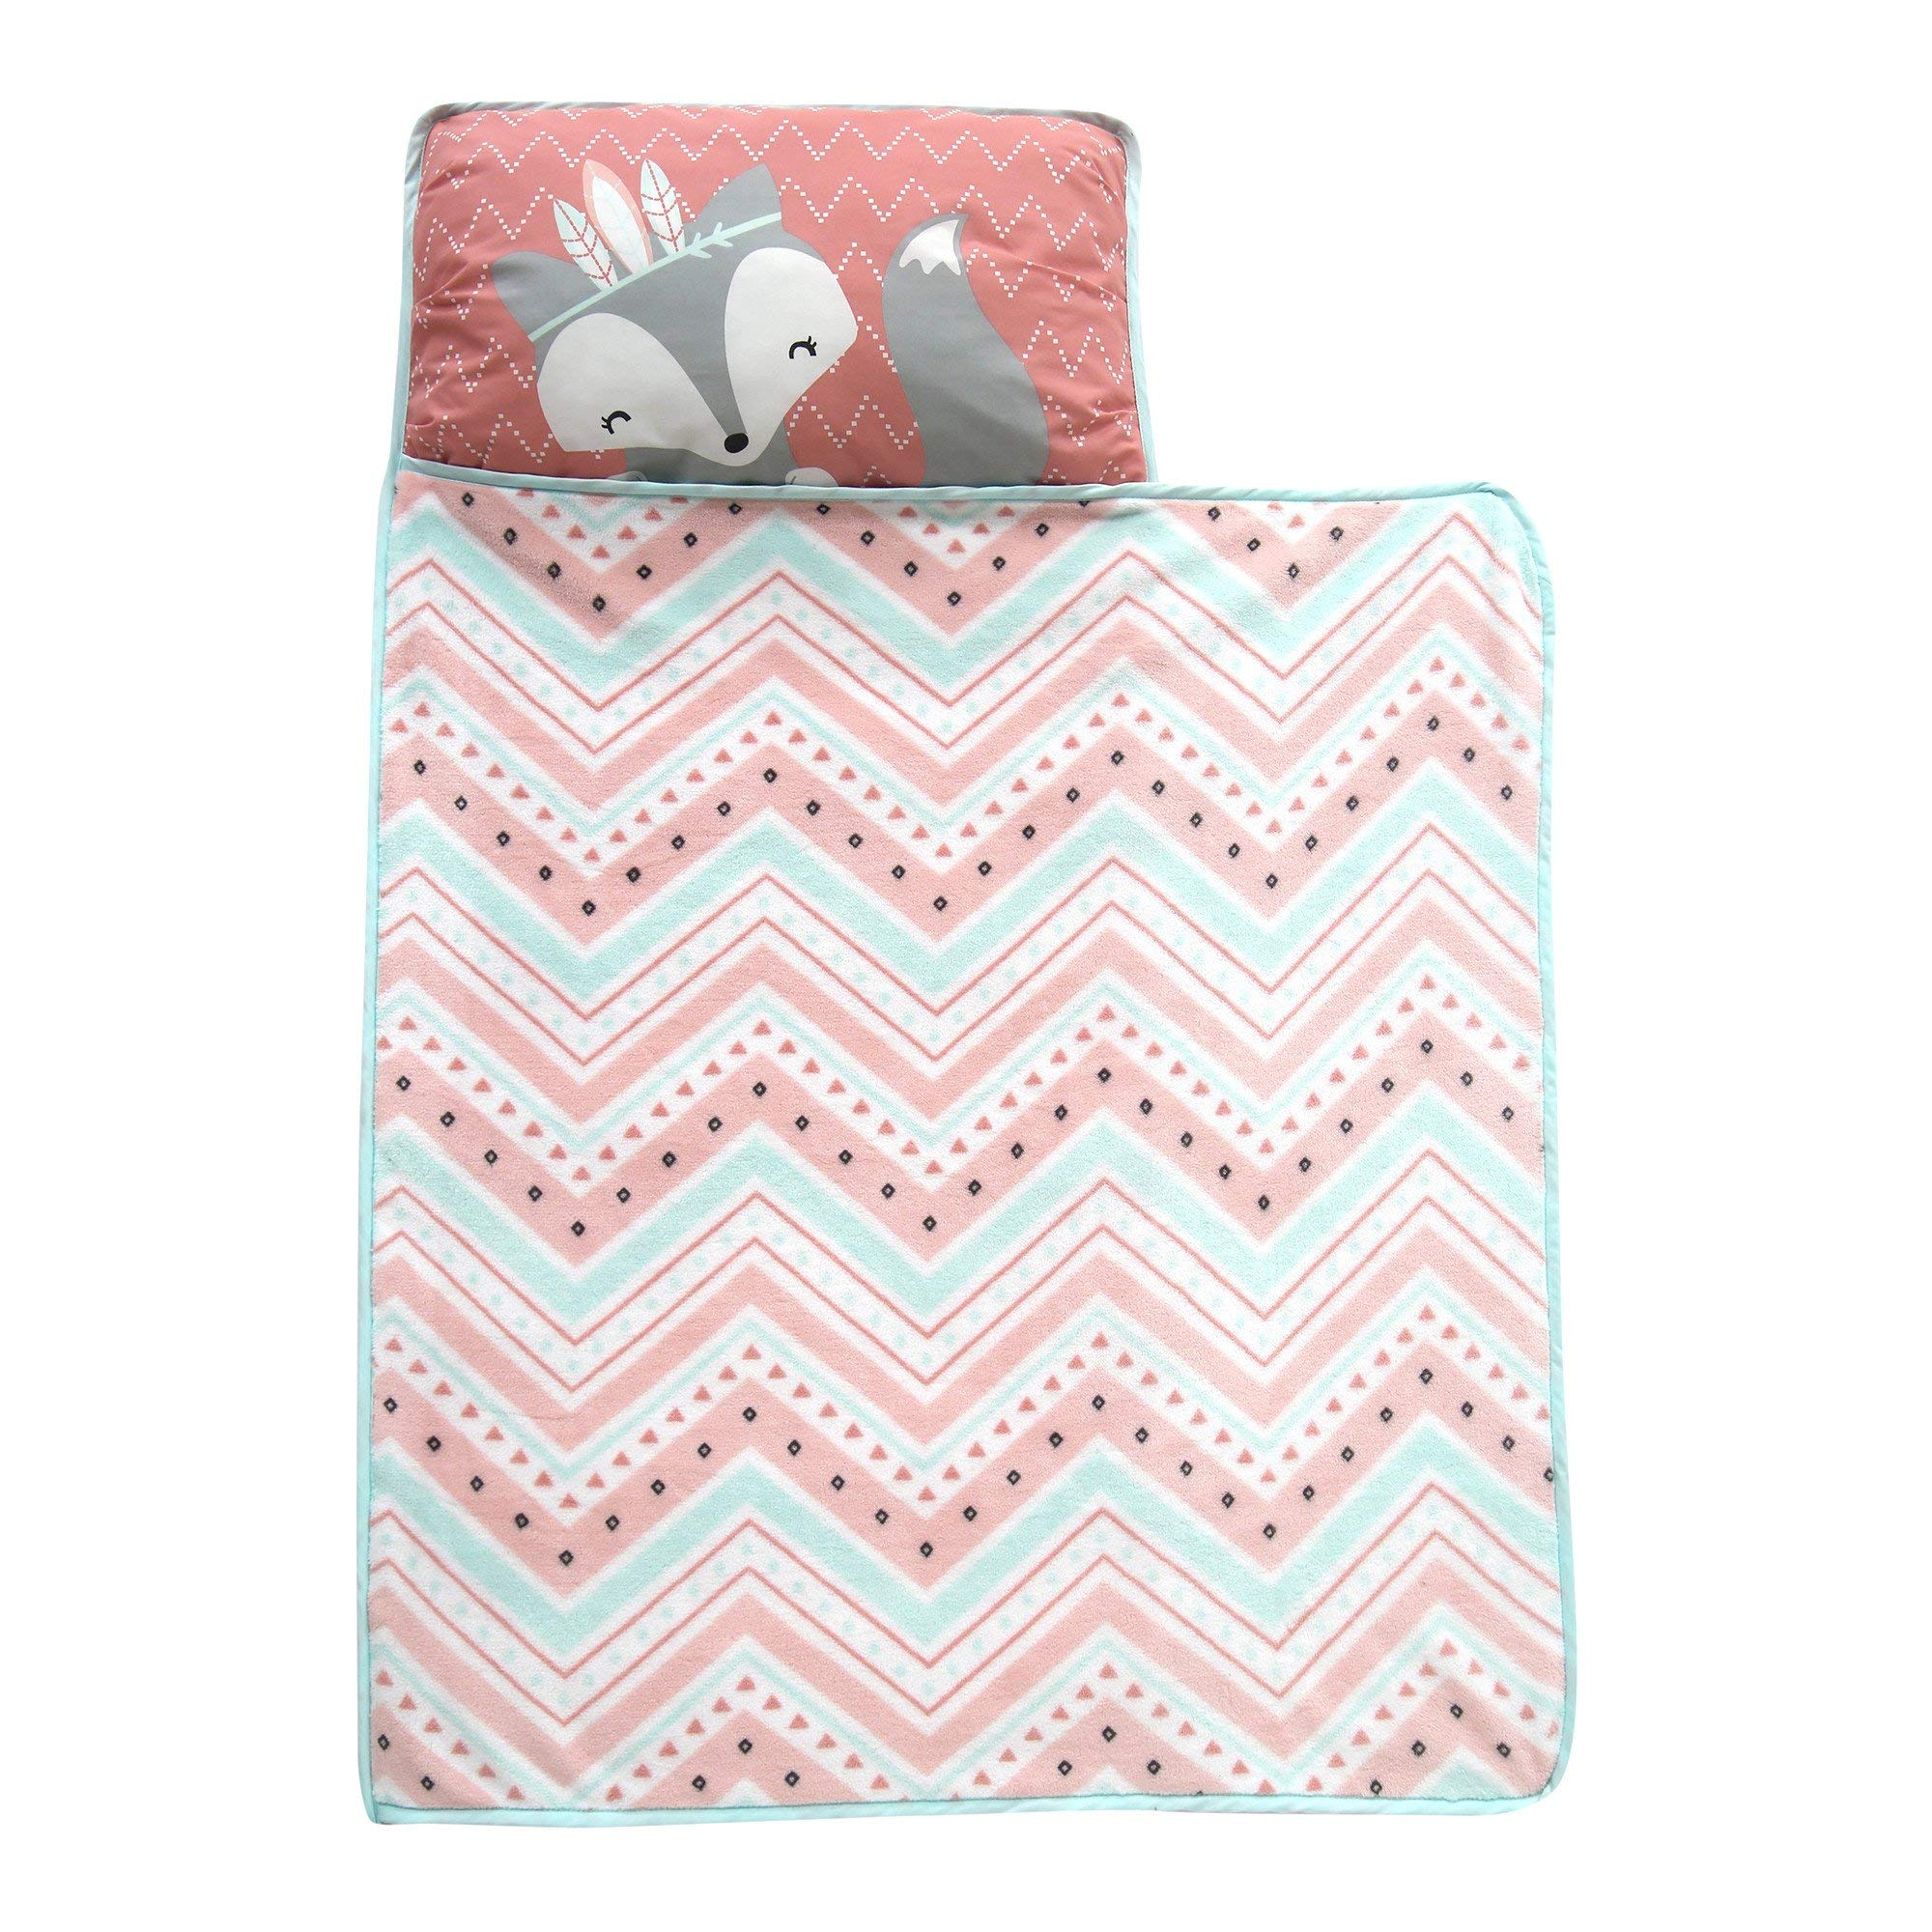 Lambs & Ivy Little Spirit Nap Mat, Coral/Blue/White